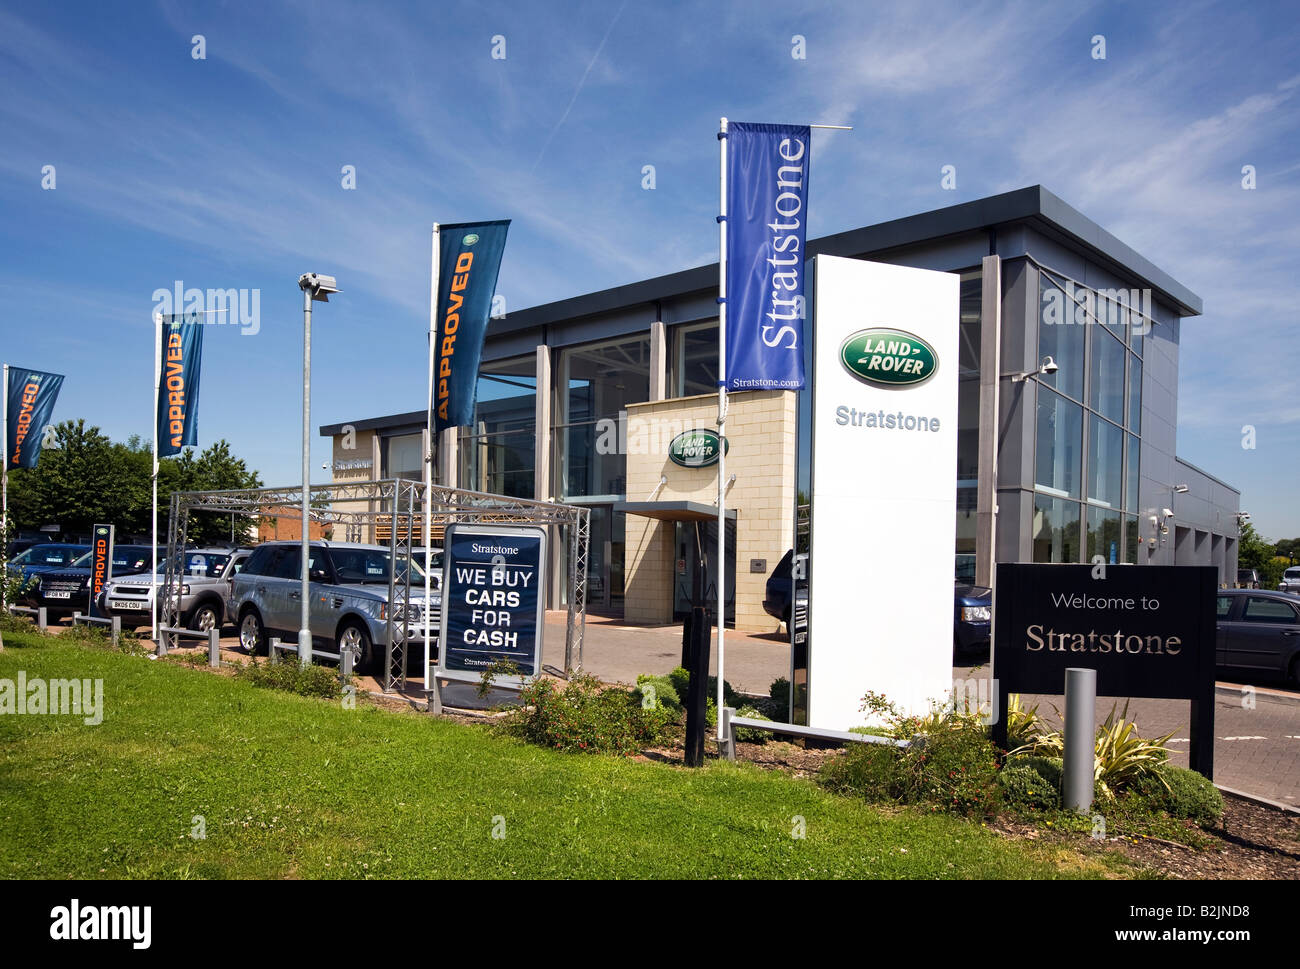 menlyn the in has all serviced it rover facility dealerships home dealership is of pretoria landrover that new land jaguar opens